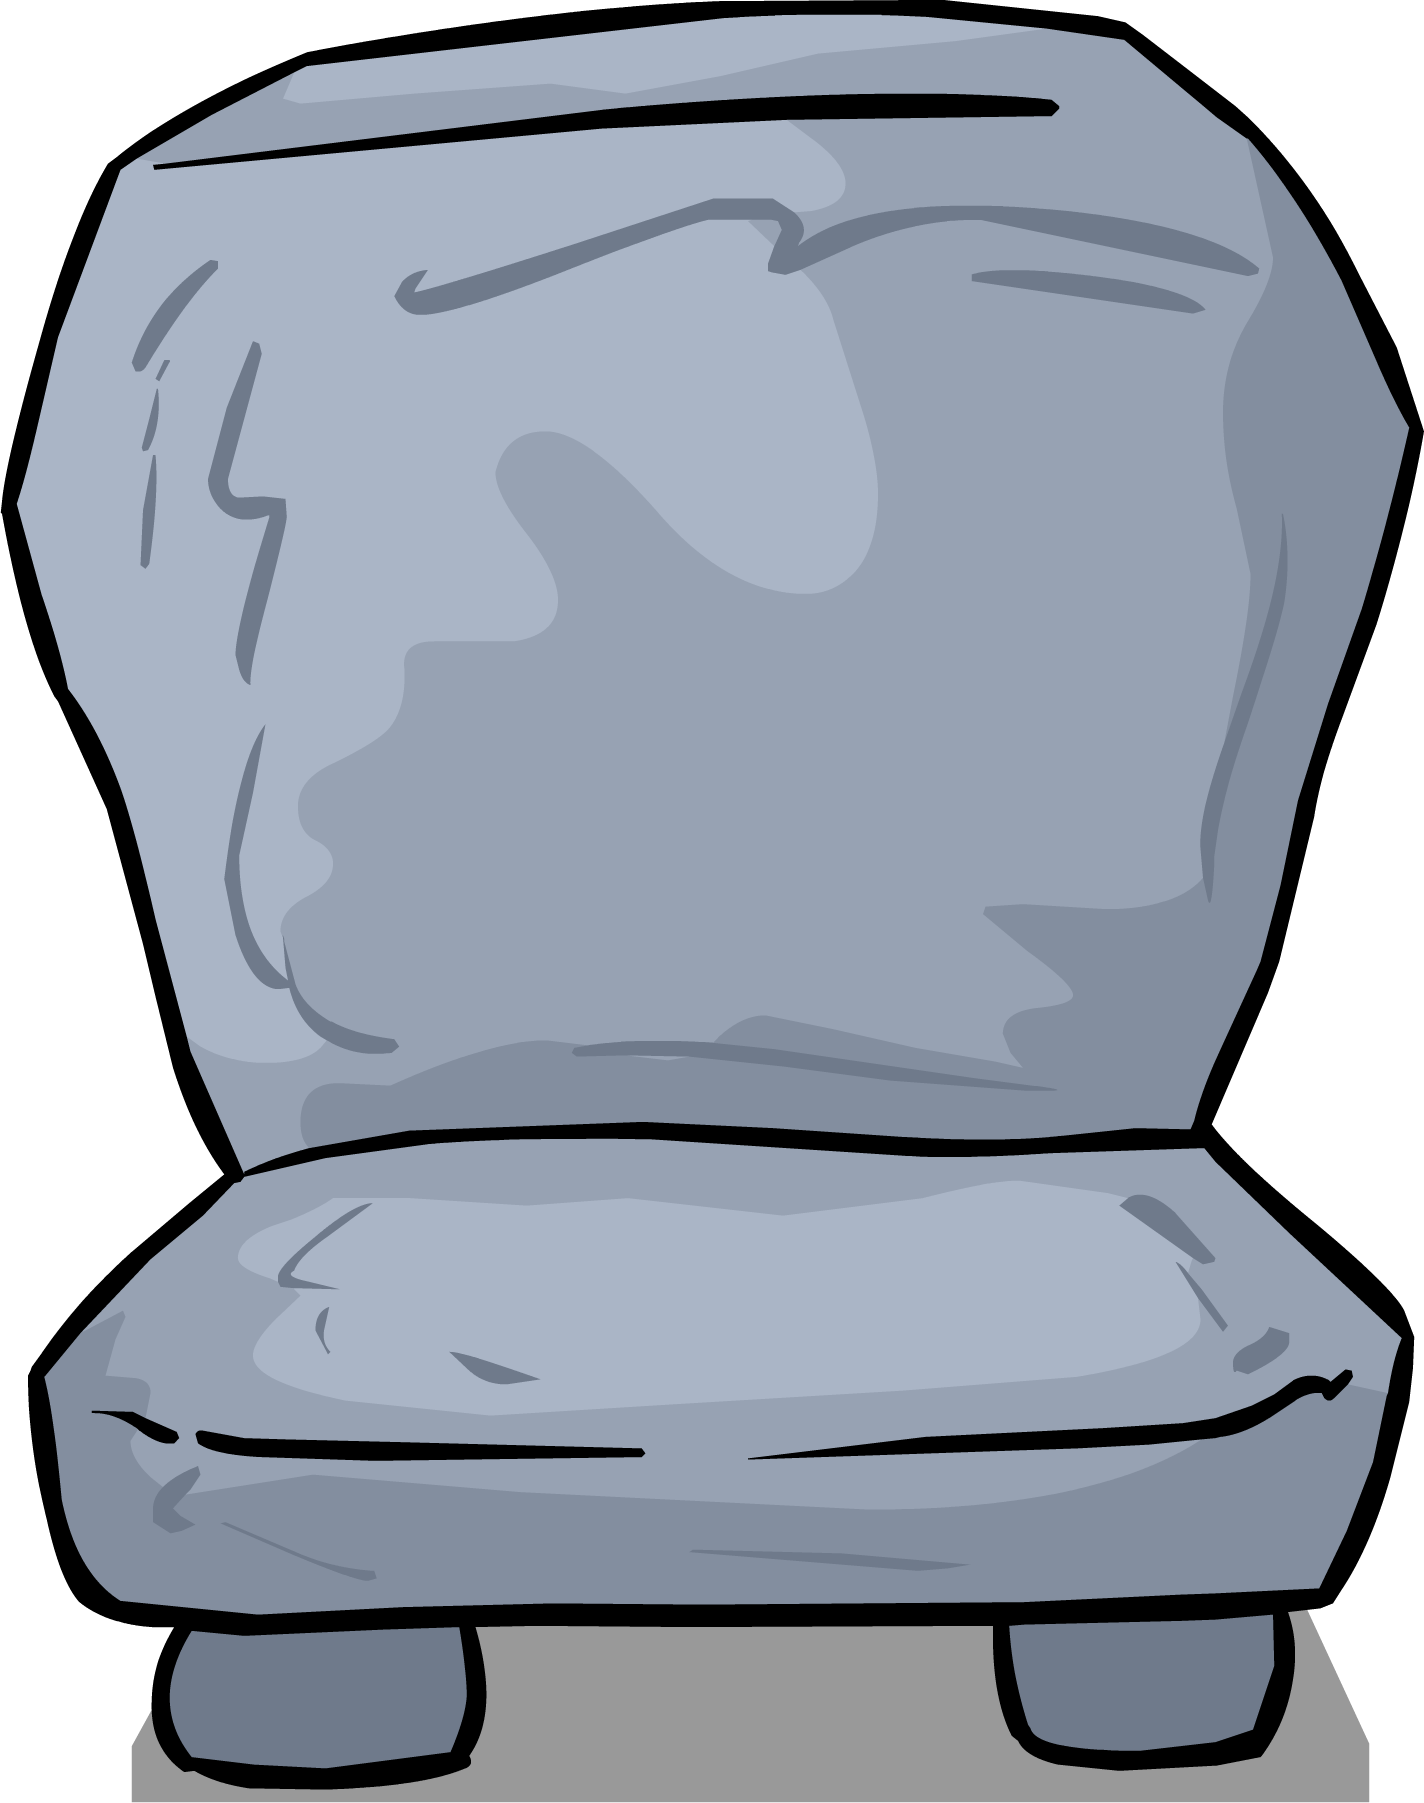 Clipart car seat free stock Image - Stone Chair sprite 002.png | Club Penguin Wiki | FANDOM ... free stock